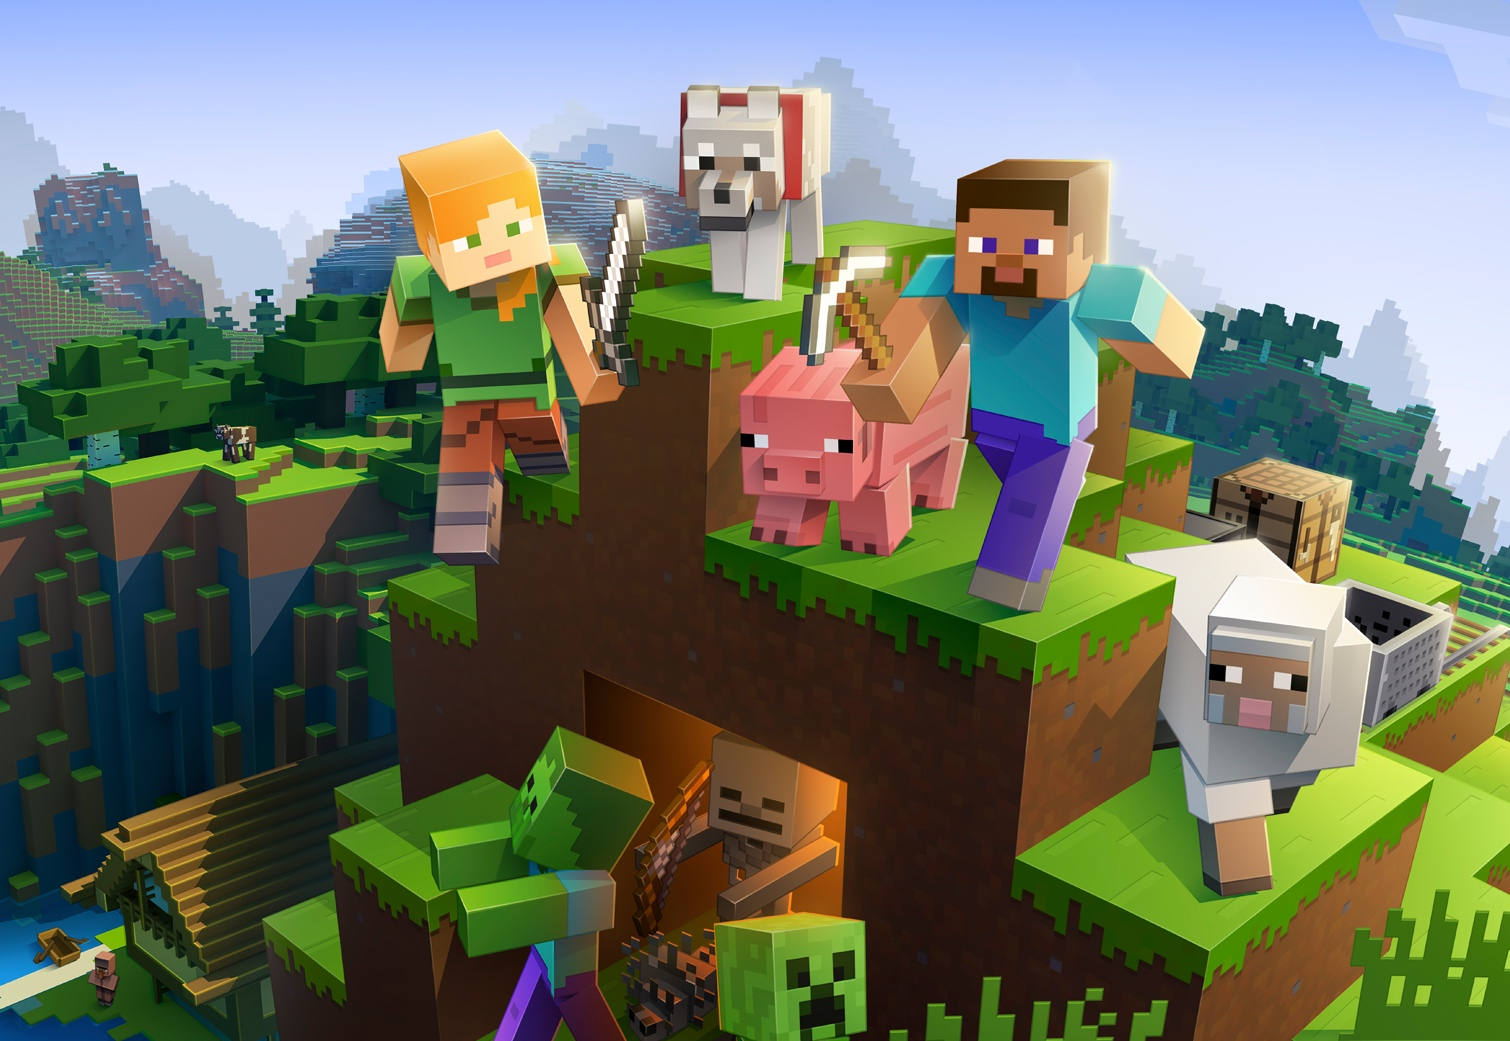 Minecraft is having a big comeback in 2019